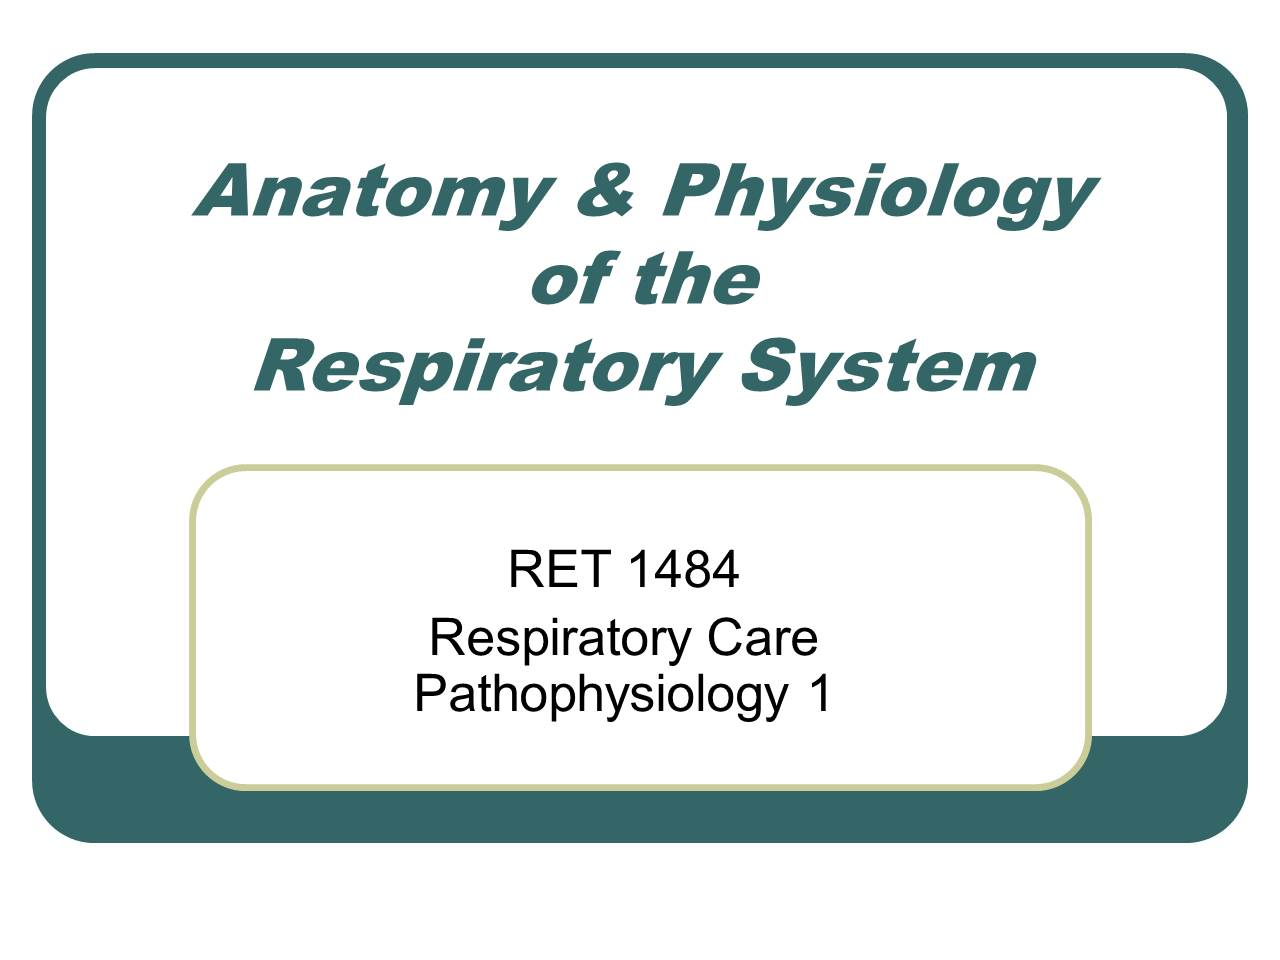 Anatomy & Physiology of the Respiratory System